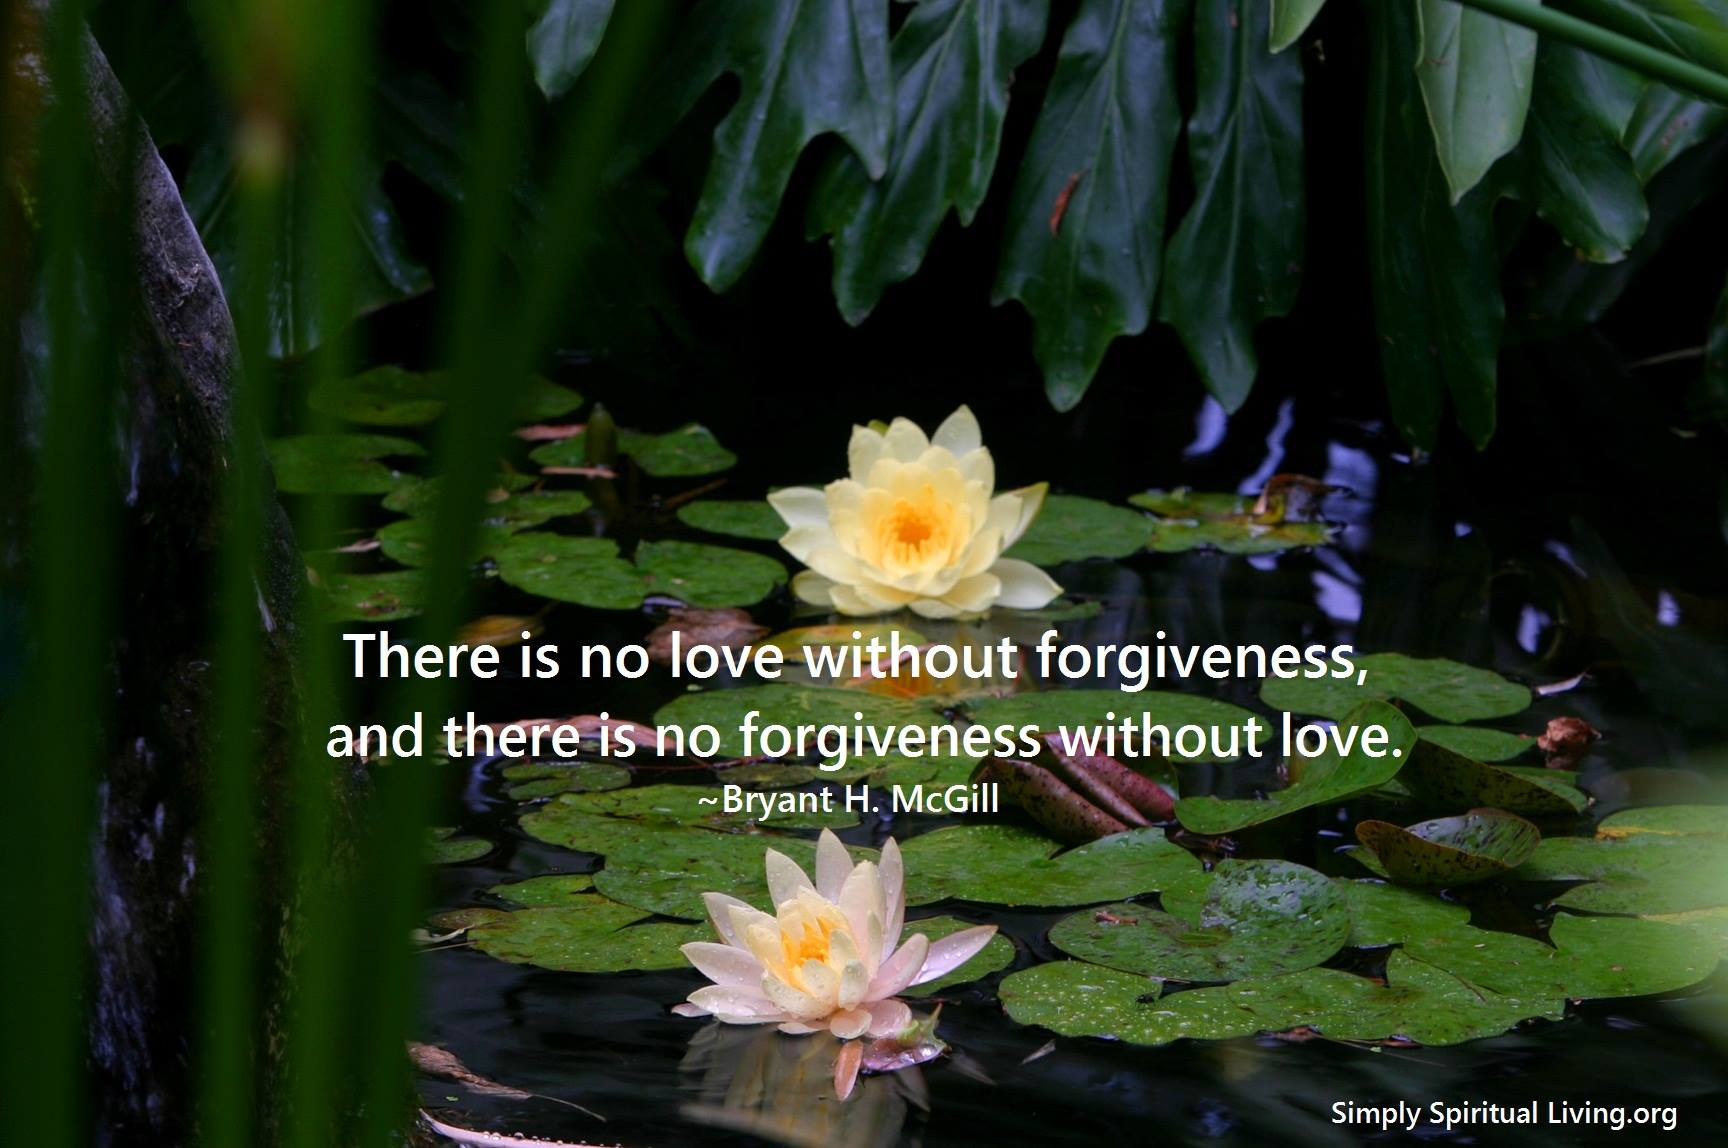 There's No Love without Forgiveness